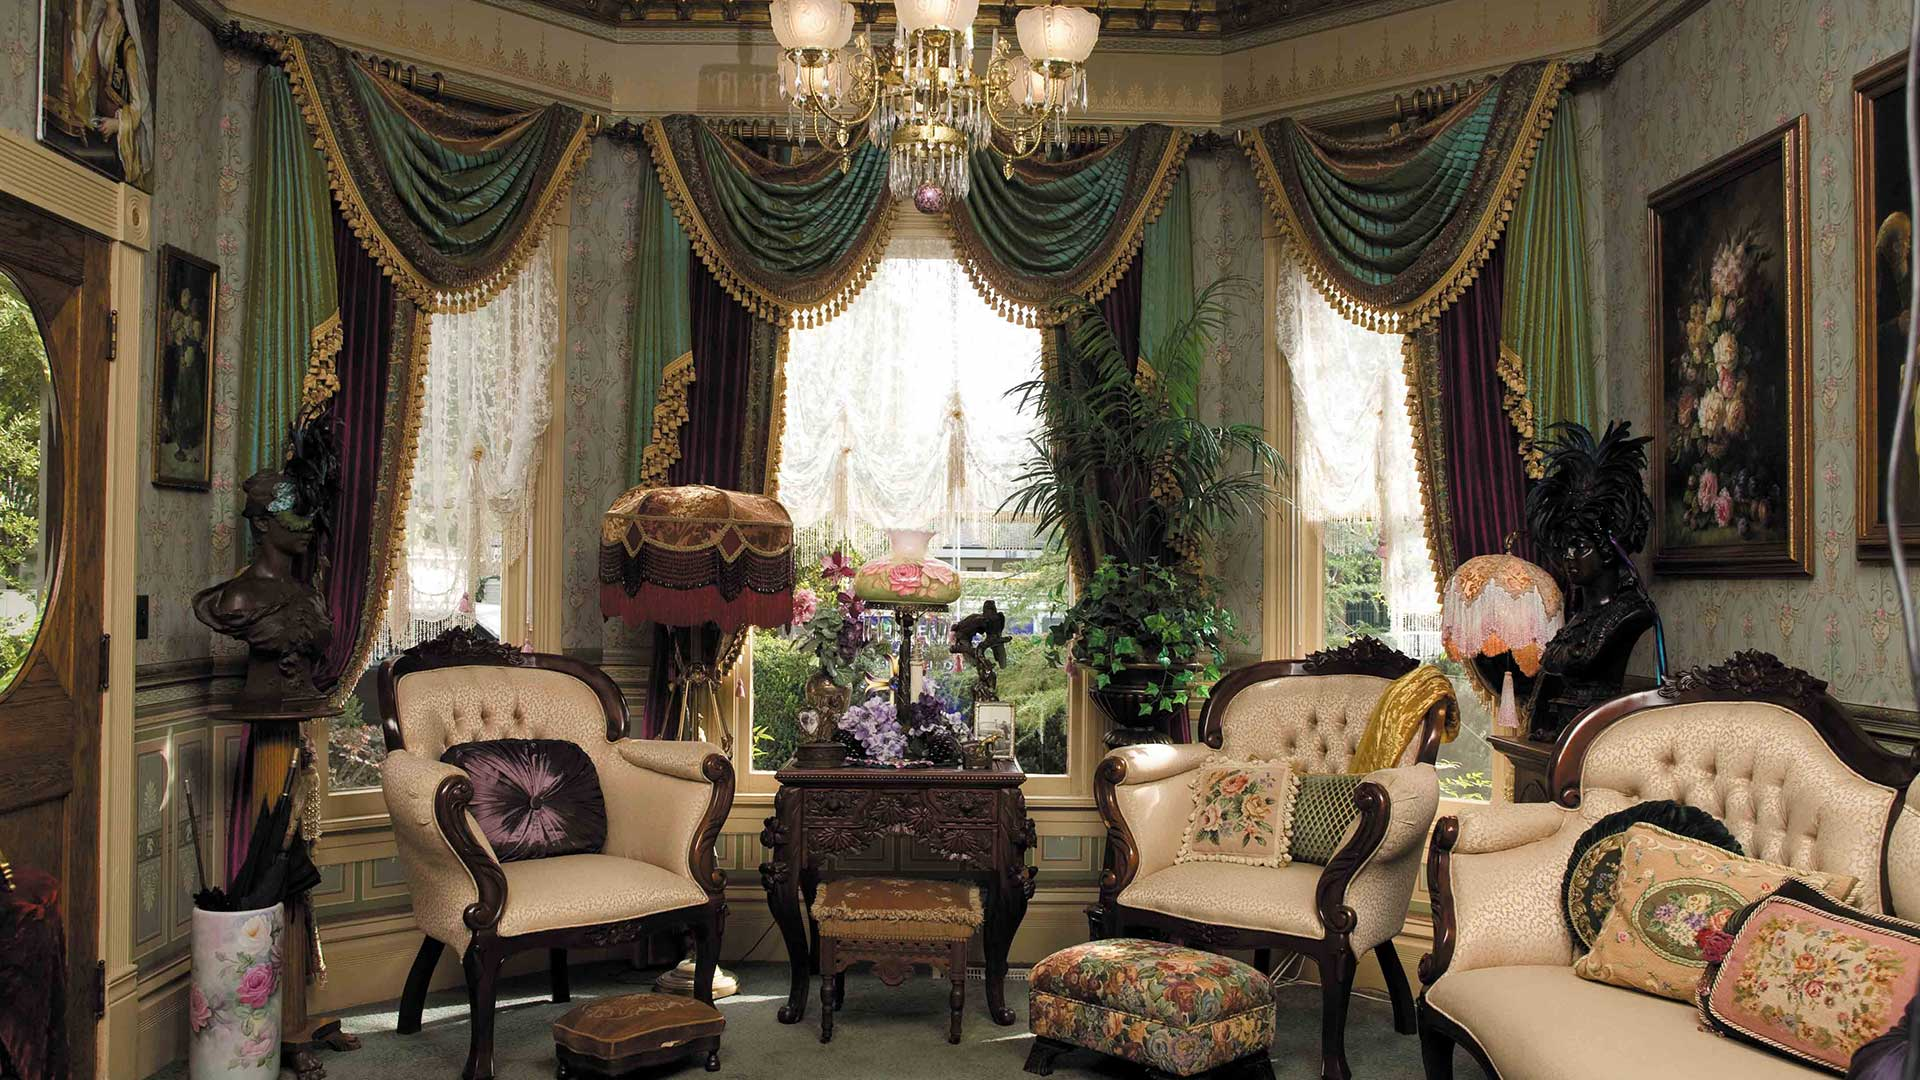 Aristocratic-style living room portraying Victorian decor, floral wallpaper, ornate furniture, and a chandelier.